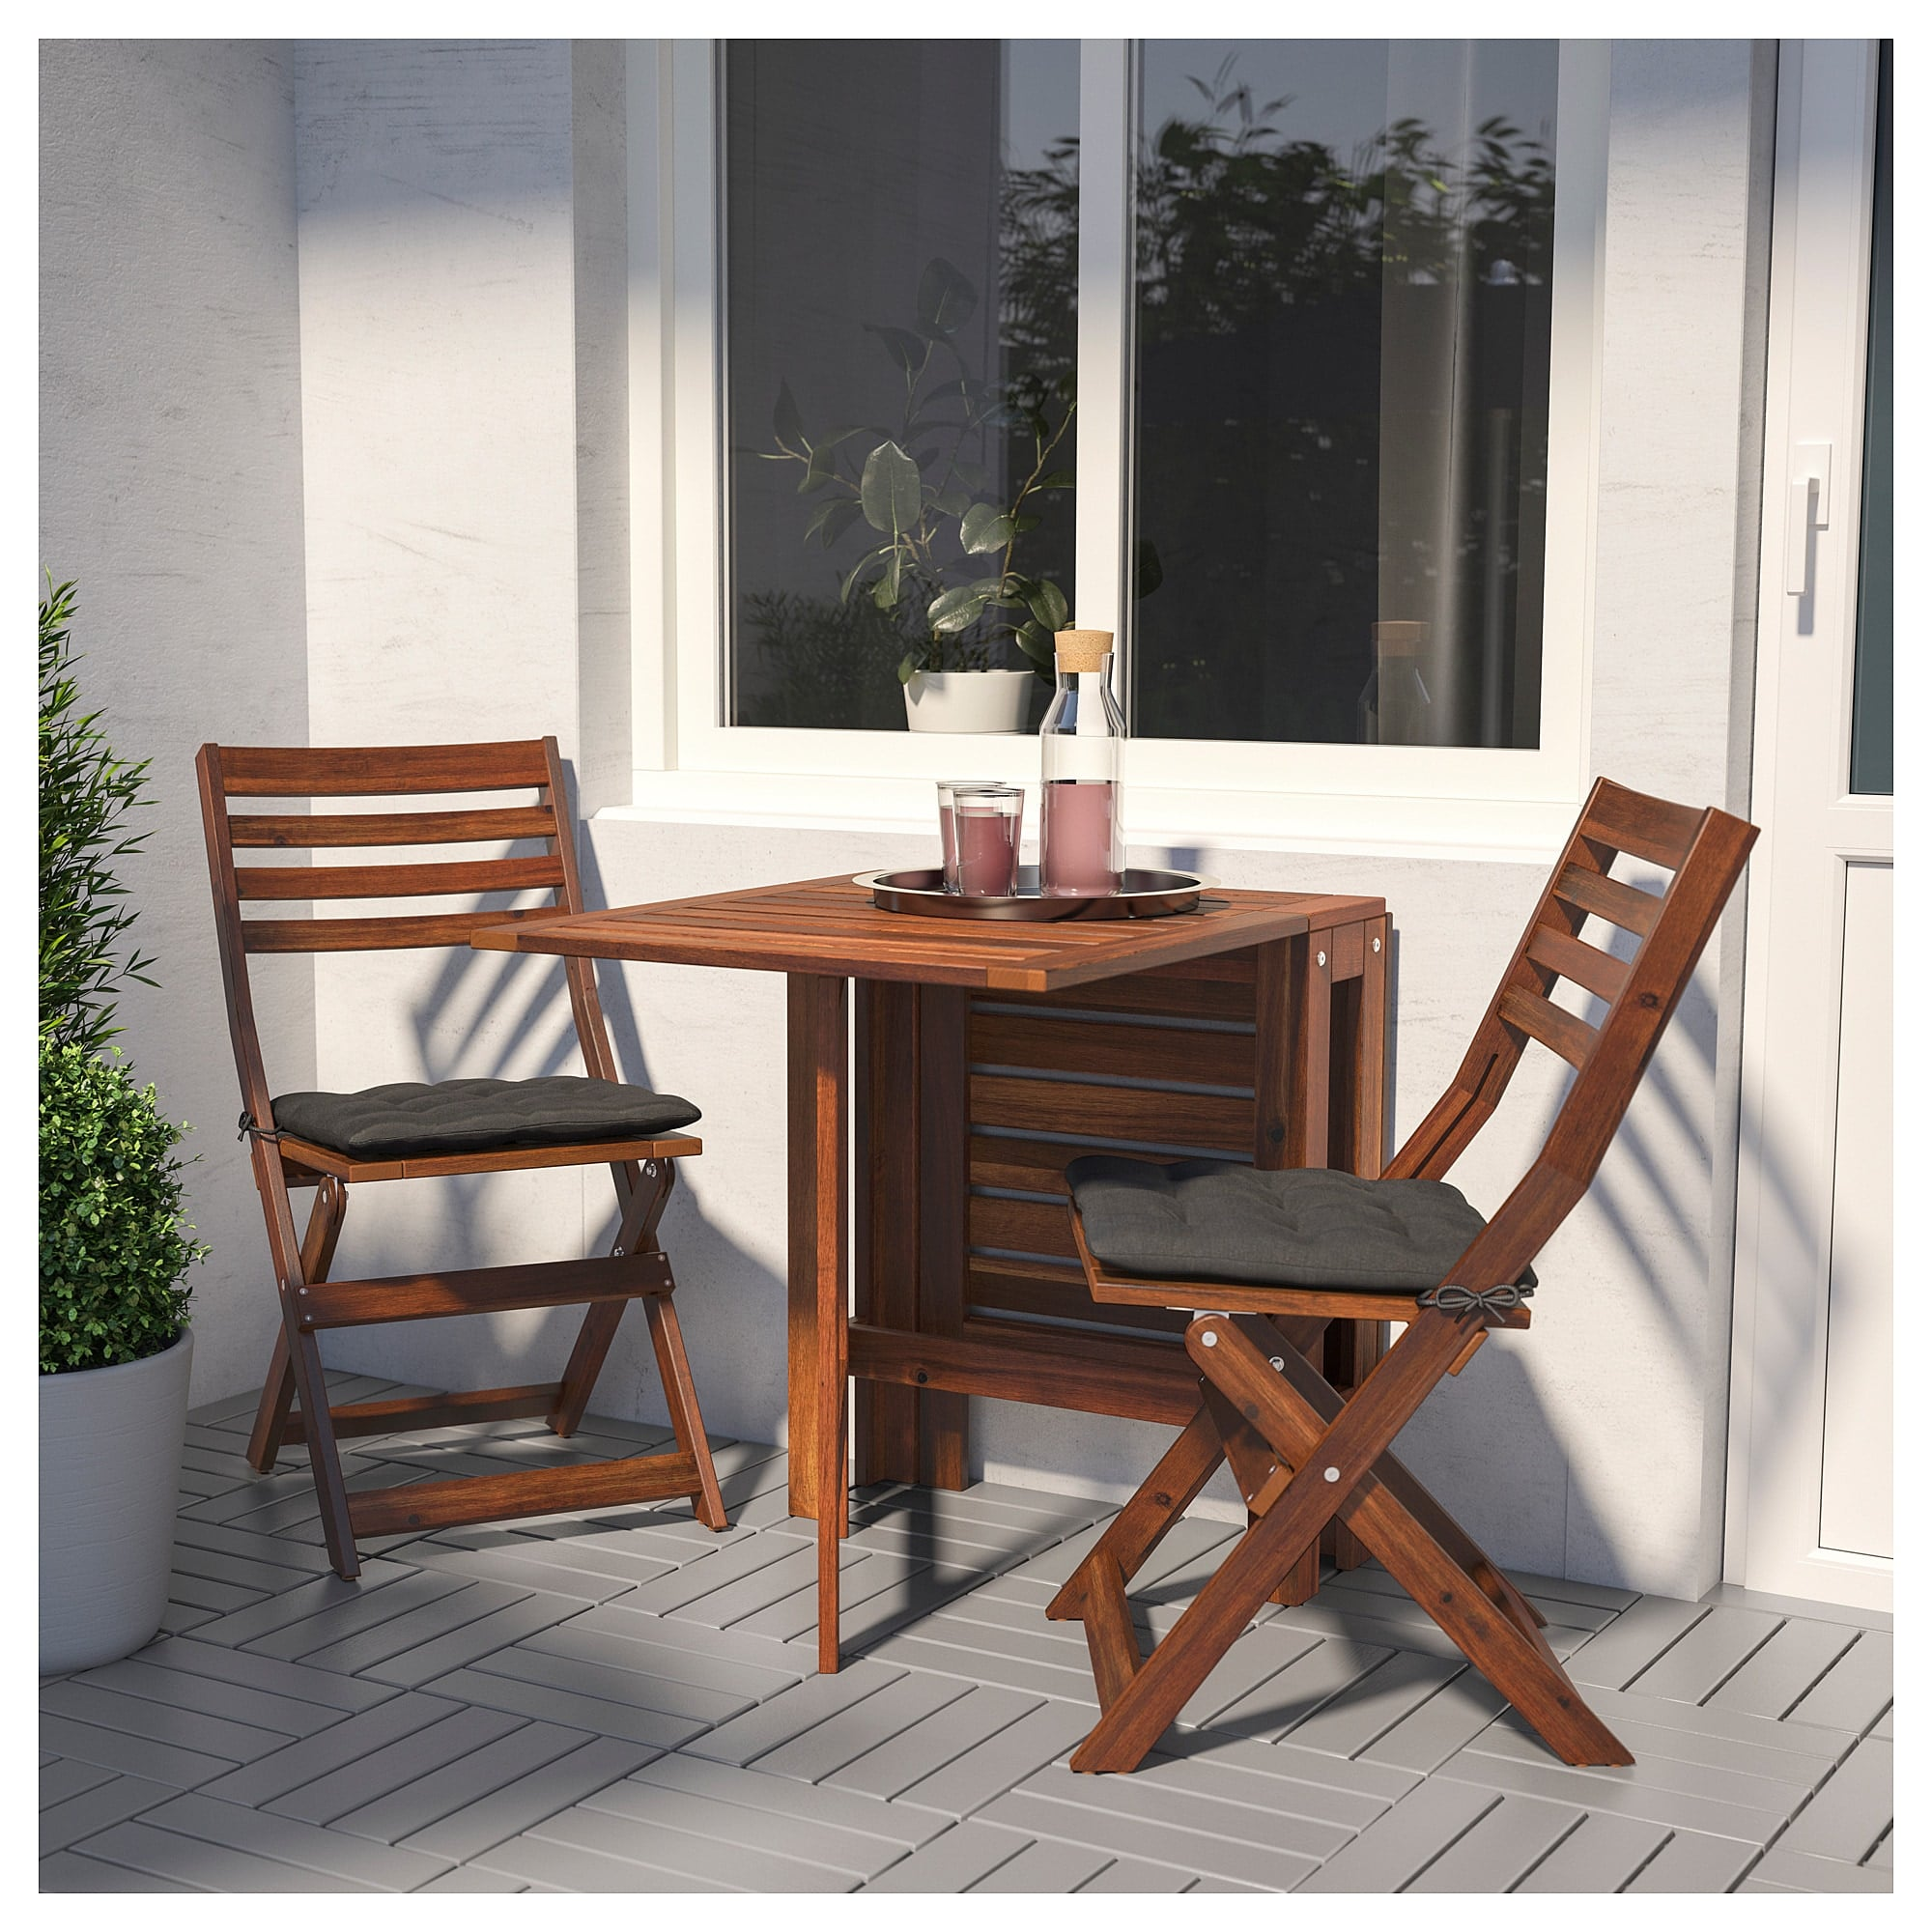 Applaro Table And Two Folding Chairs Best Ikea Outdoor Furniture For Small Spaces Popsugar Home Australia Photo 41